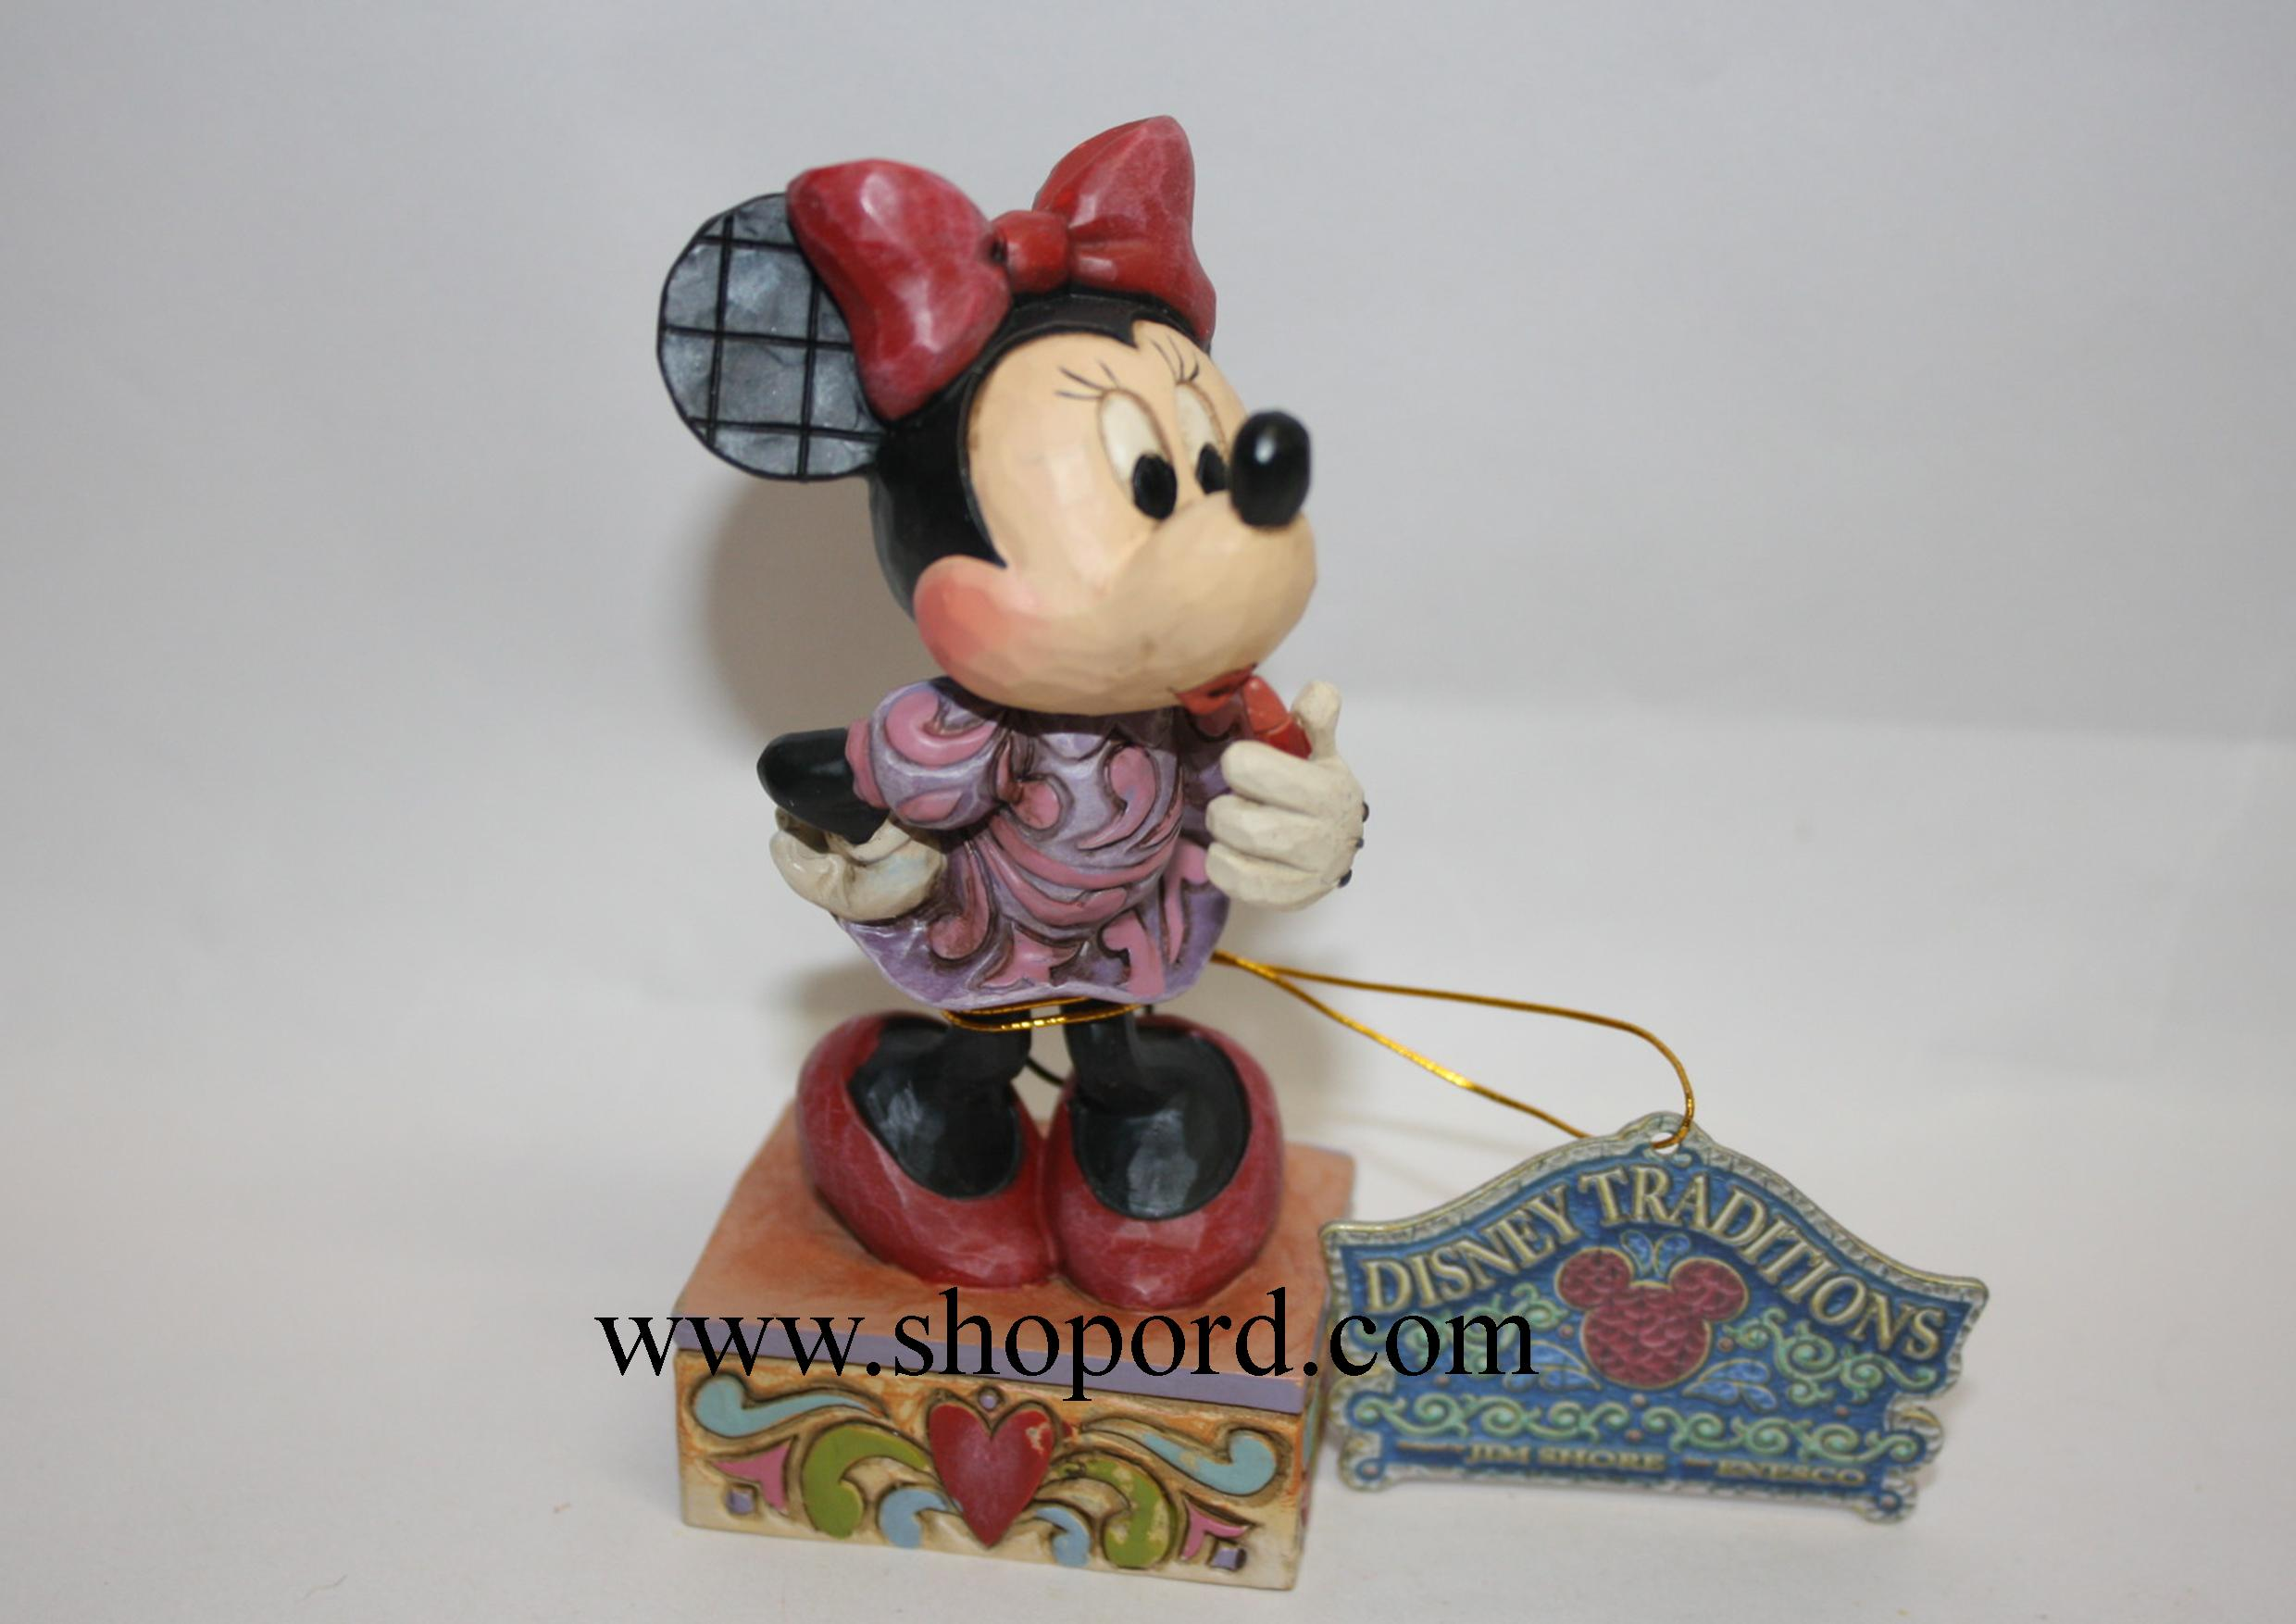 Jim Shore Disney Traditions Sweetheart Diva Minnie Mouse Figurine 4031476